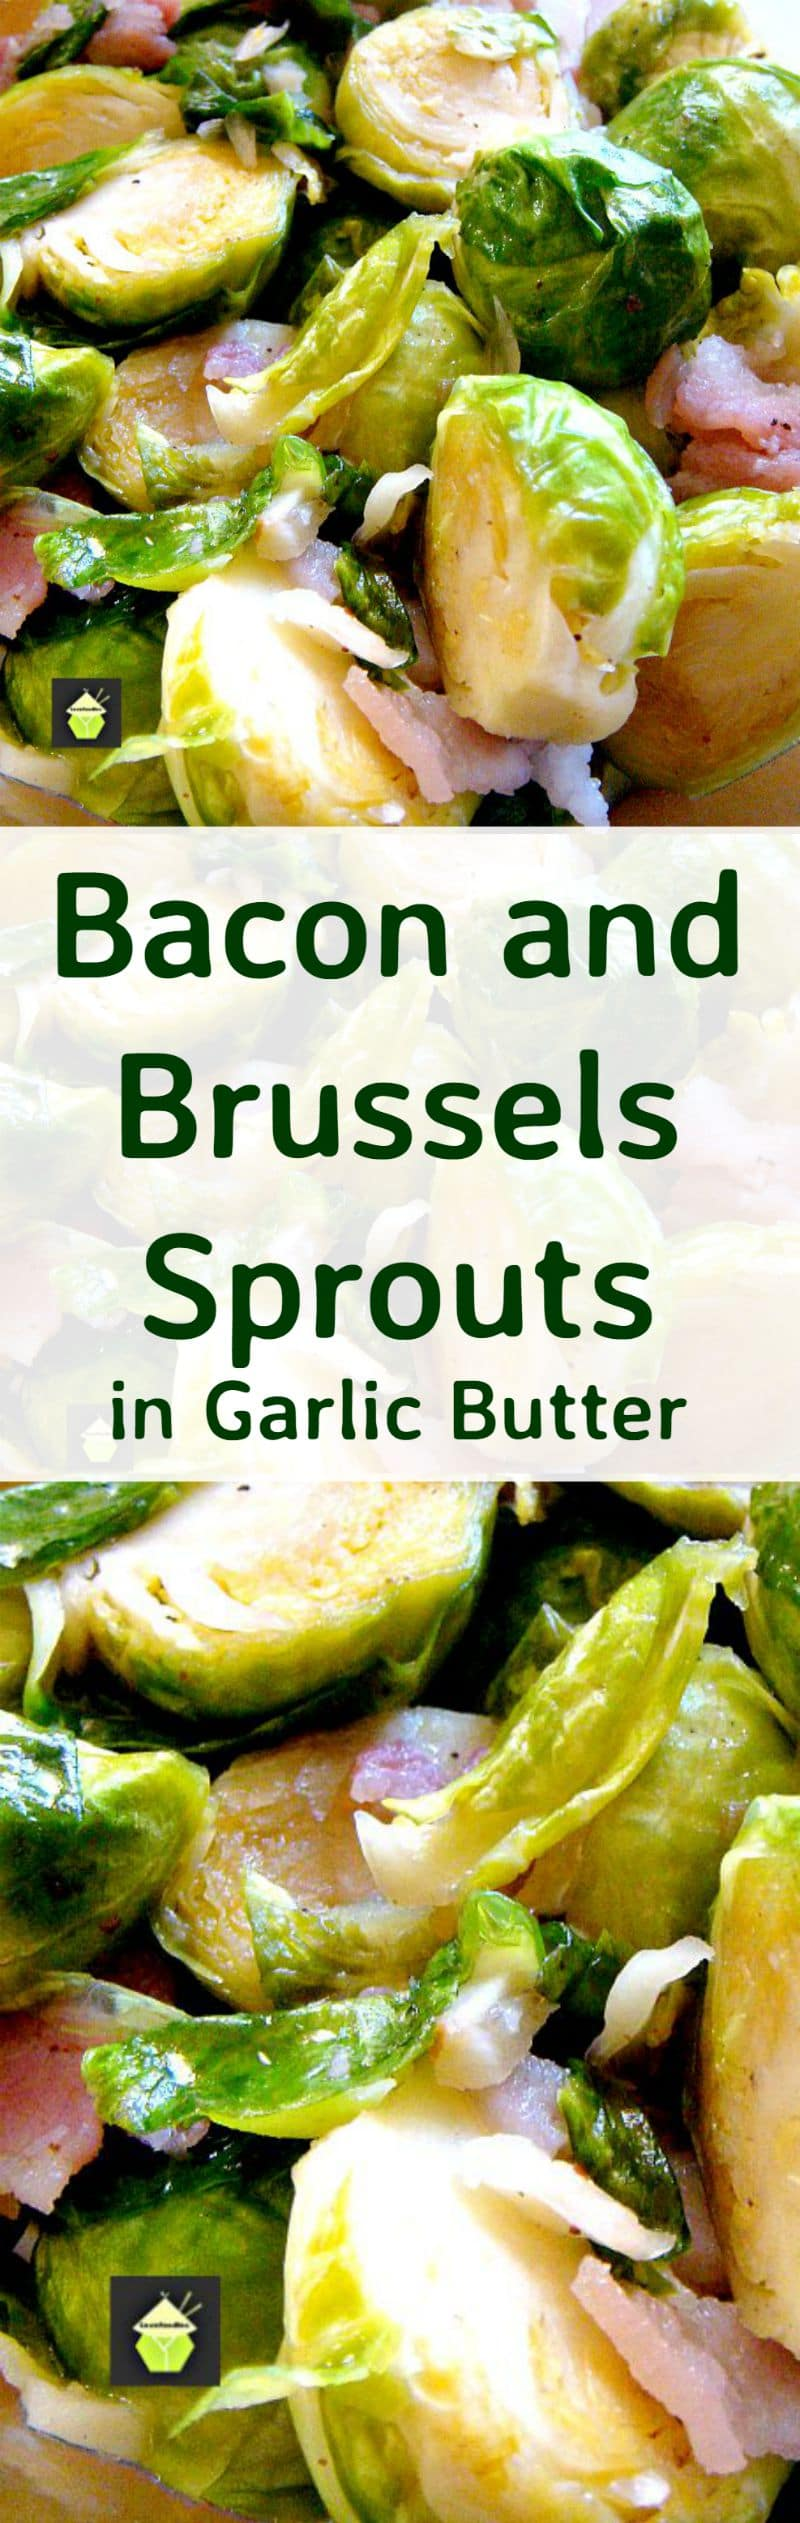 Bacon and Brussels Sprouts in Garlic Butter. This is an incredibly quick and easy recipe, and the flavors are out of this world! Very flexible too so you can add extras or keep as it is.